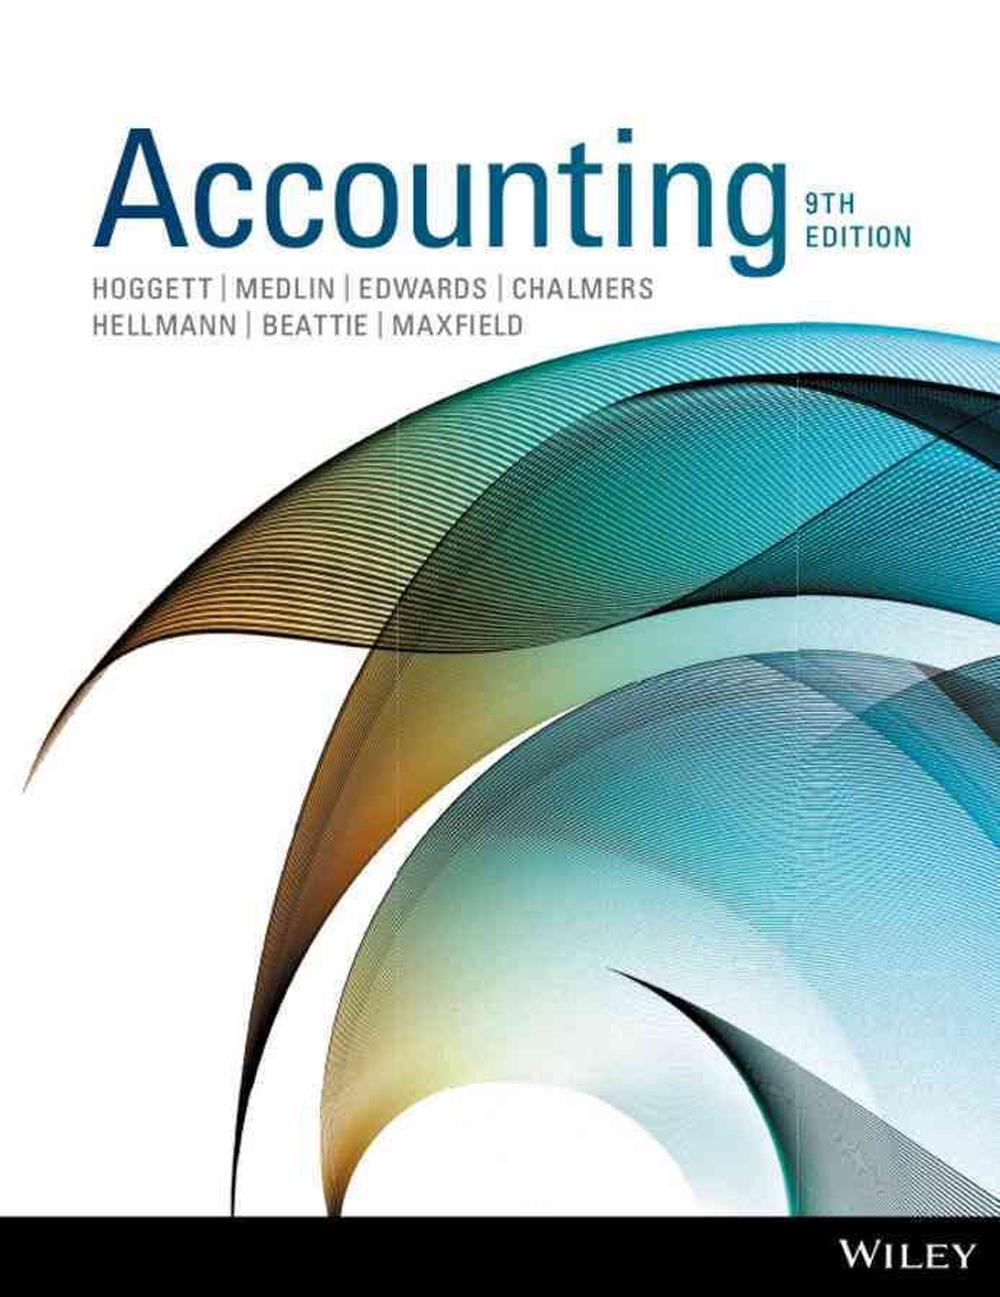 ACCOUNTING - 9TH EDITION